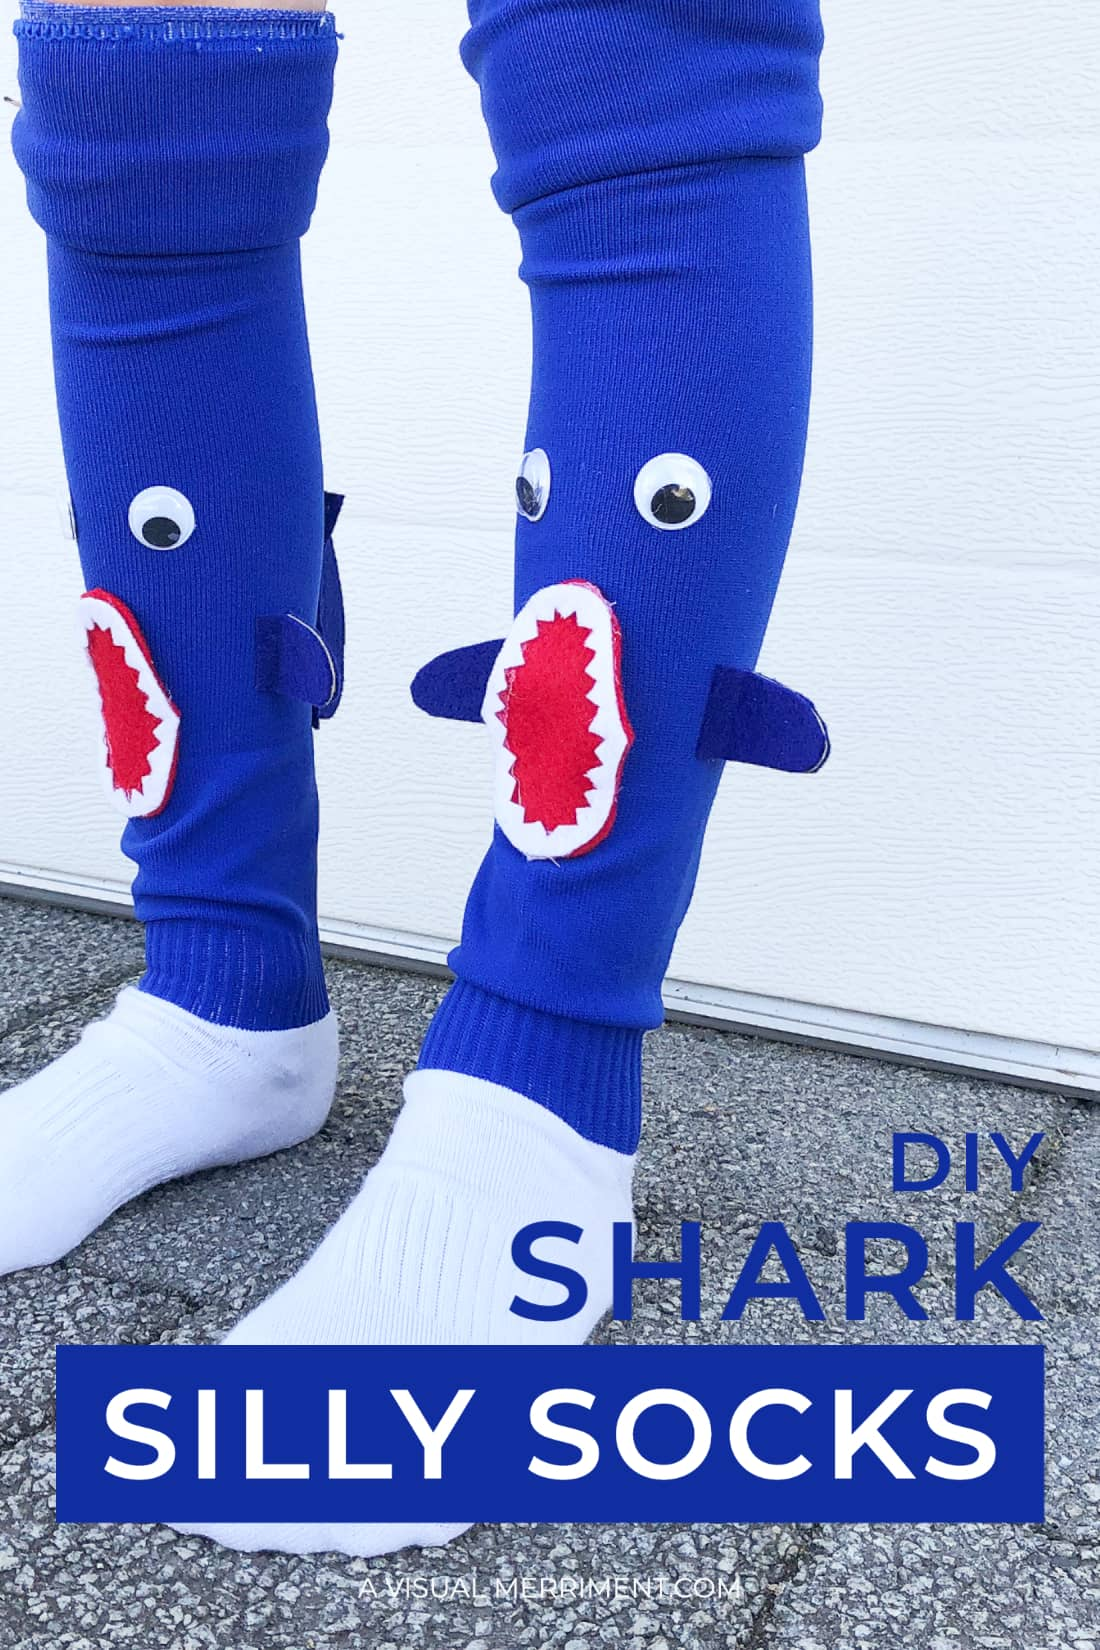 shark silly sock graphic in blue